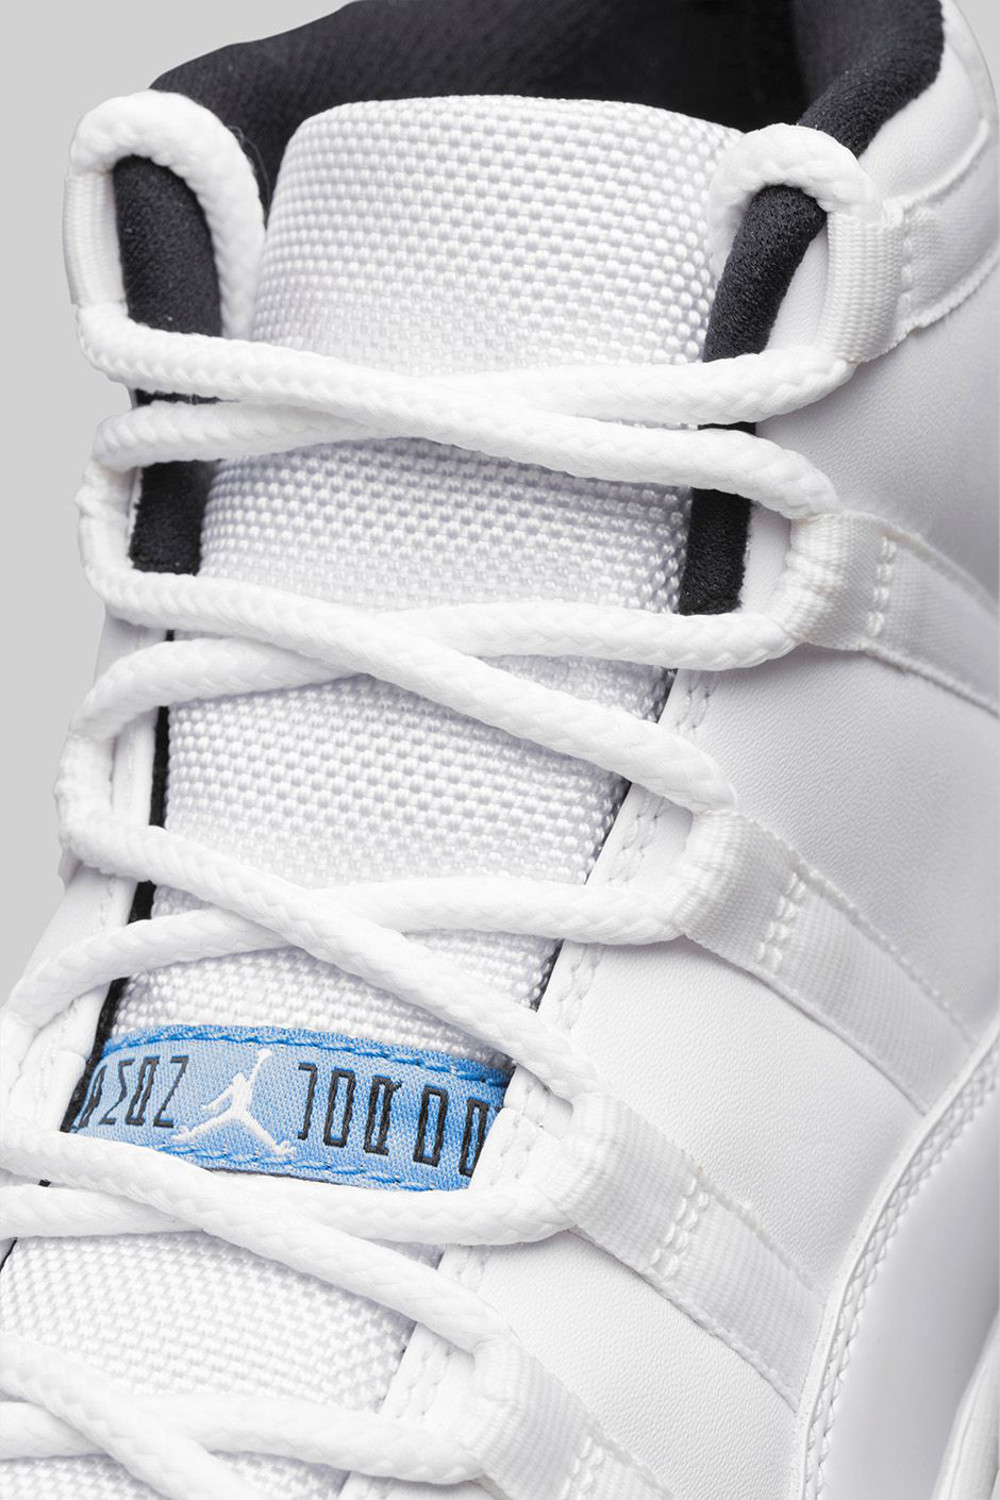 Air Jordan 11 Legend Blue (Columbia) Retro 2014-3